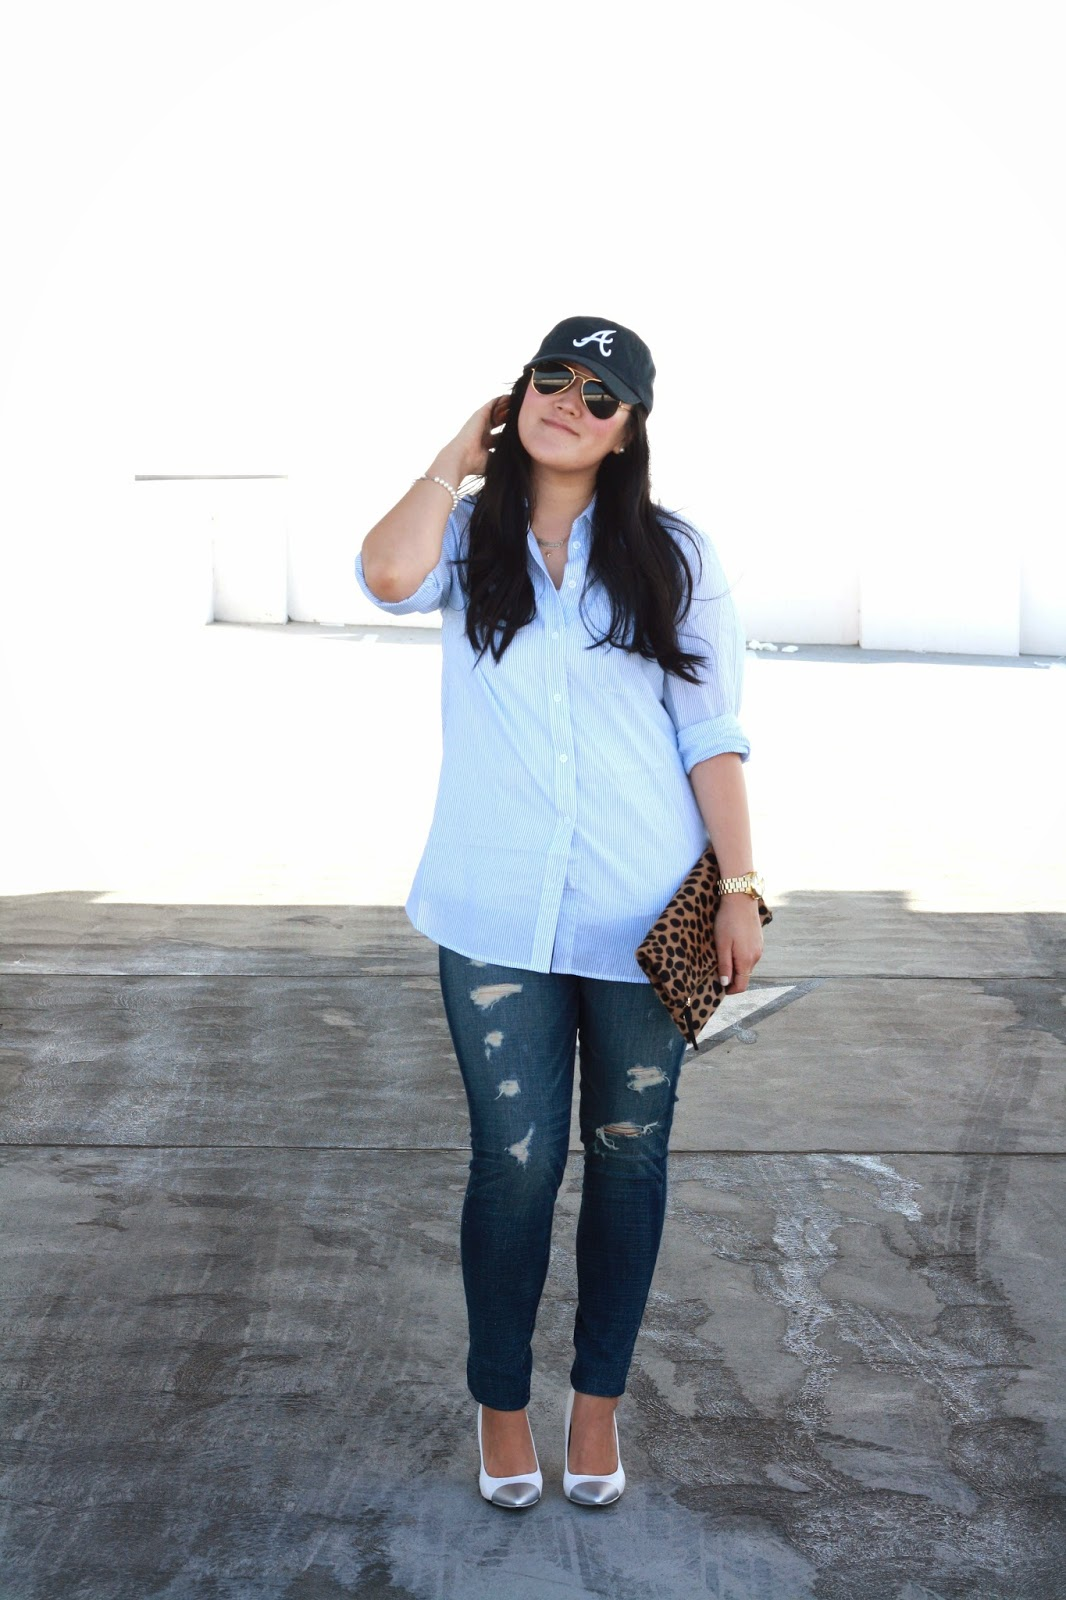 simplyxclassic, equipment top, american eagle denim, clare vivier leopard clutch, ray ban, ootd, style blogger, orange county, southern california